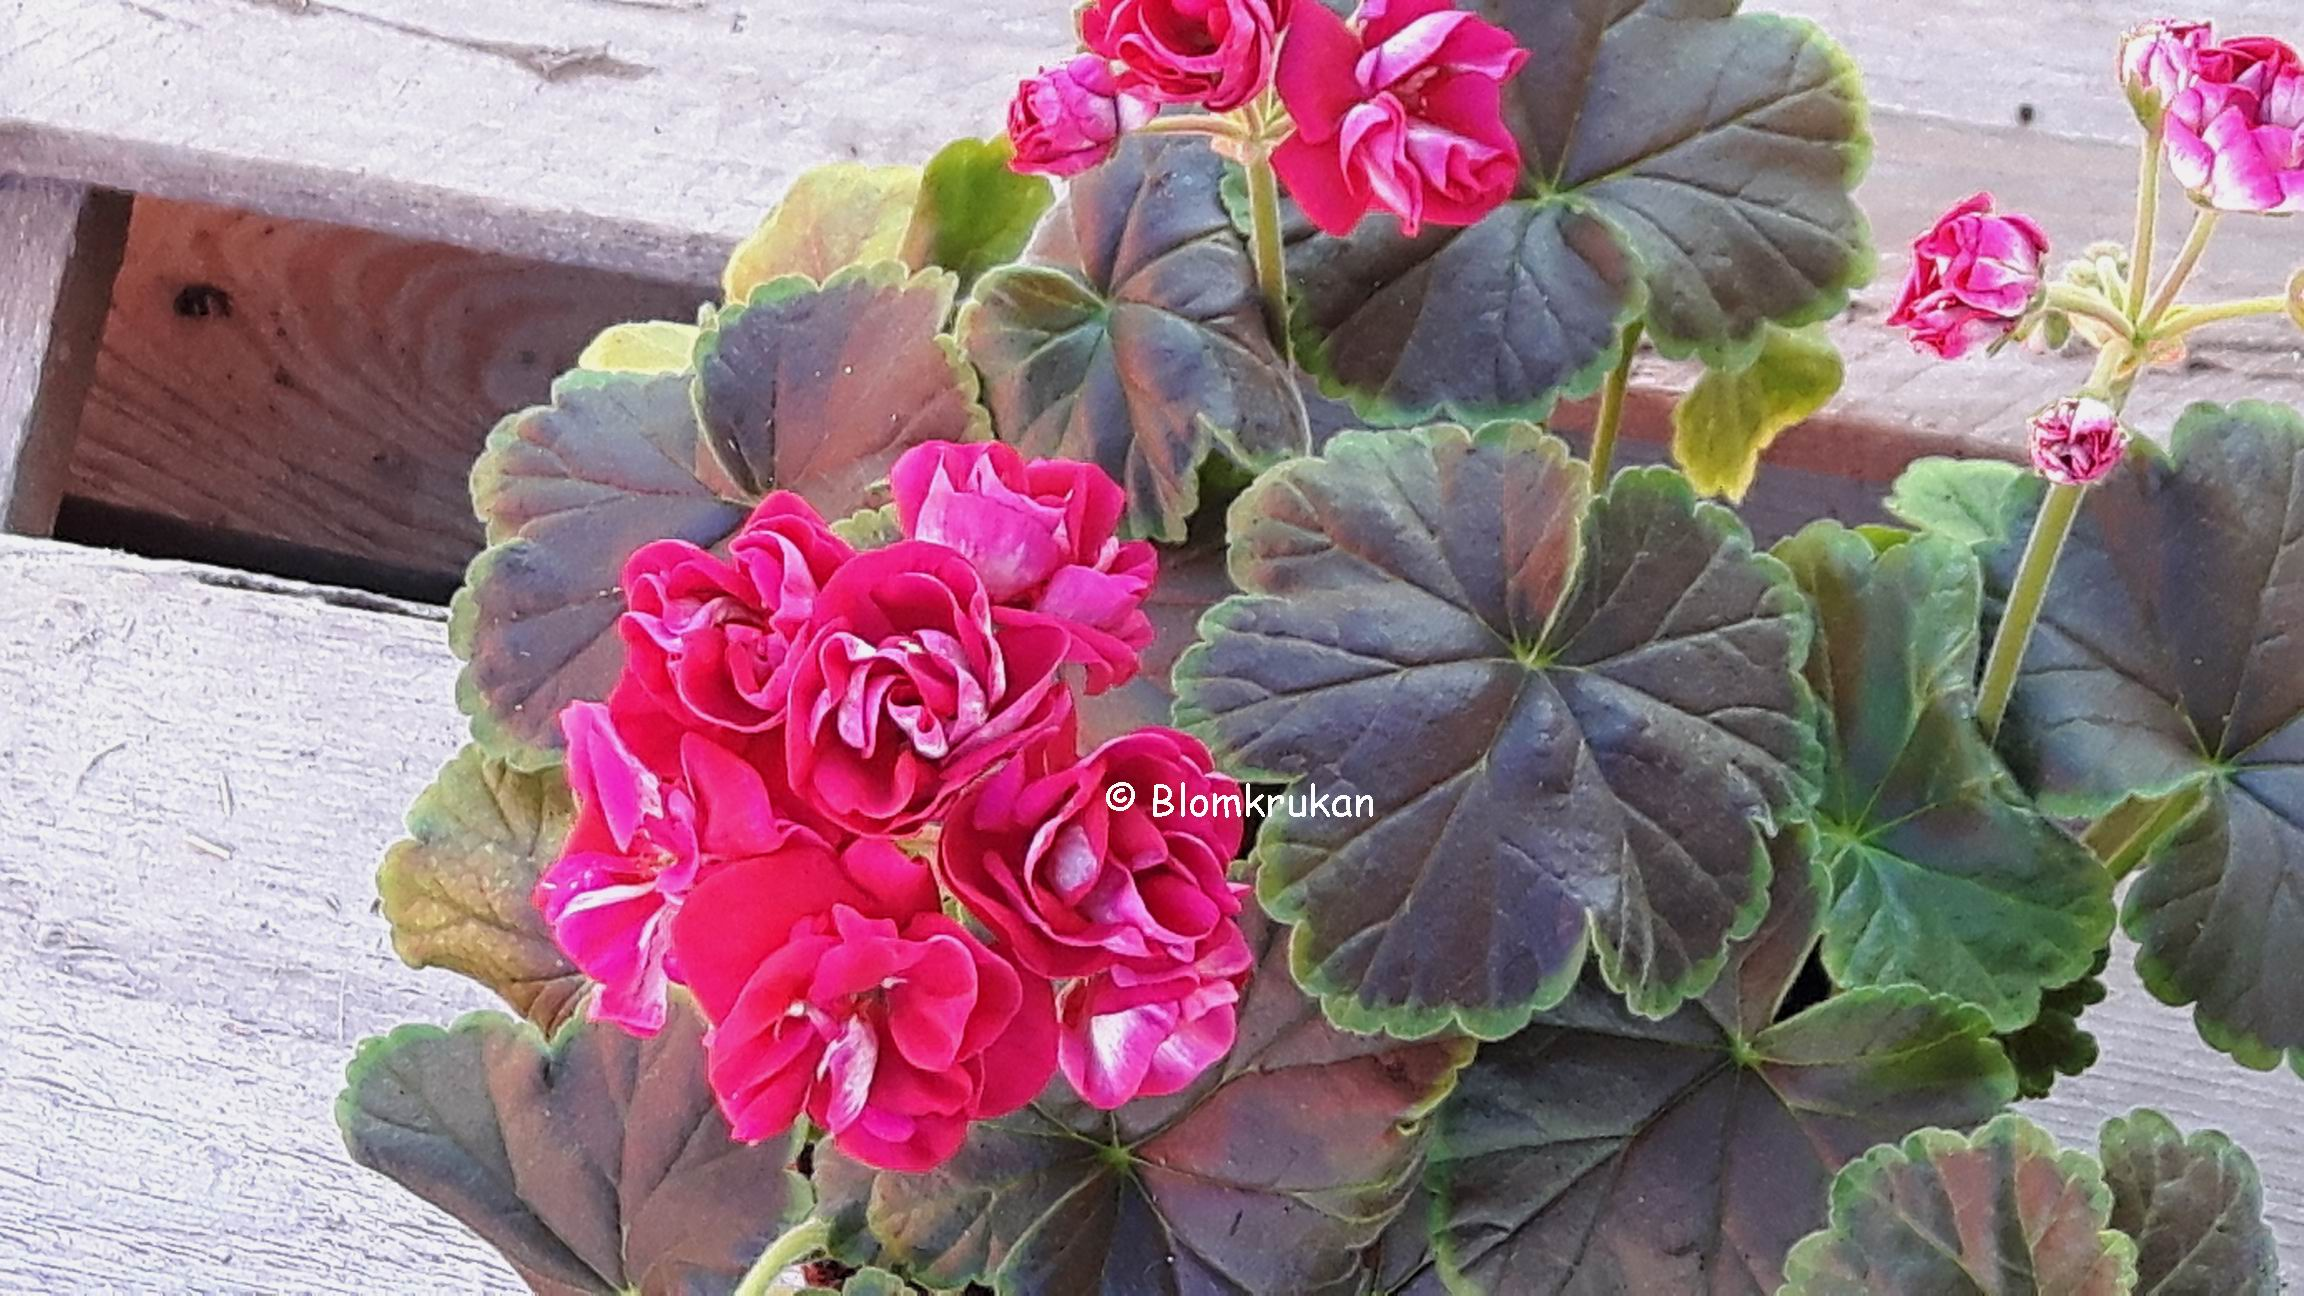 Brocade CHERRY NIGHT en av årets pelargoner 2019